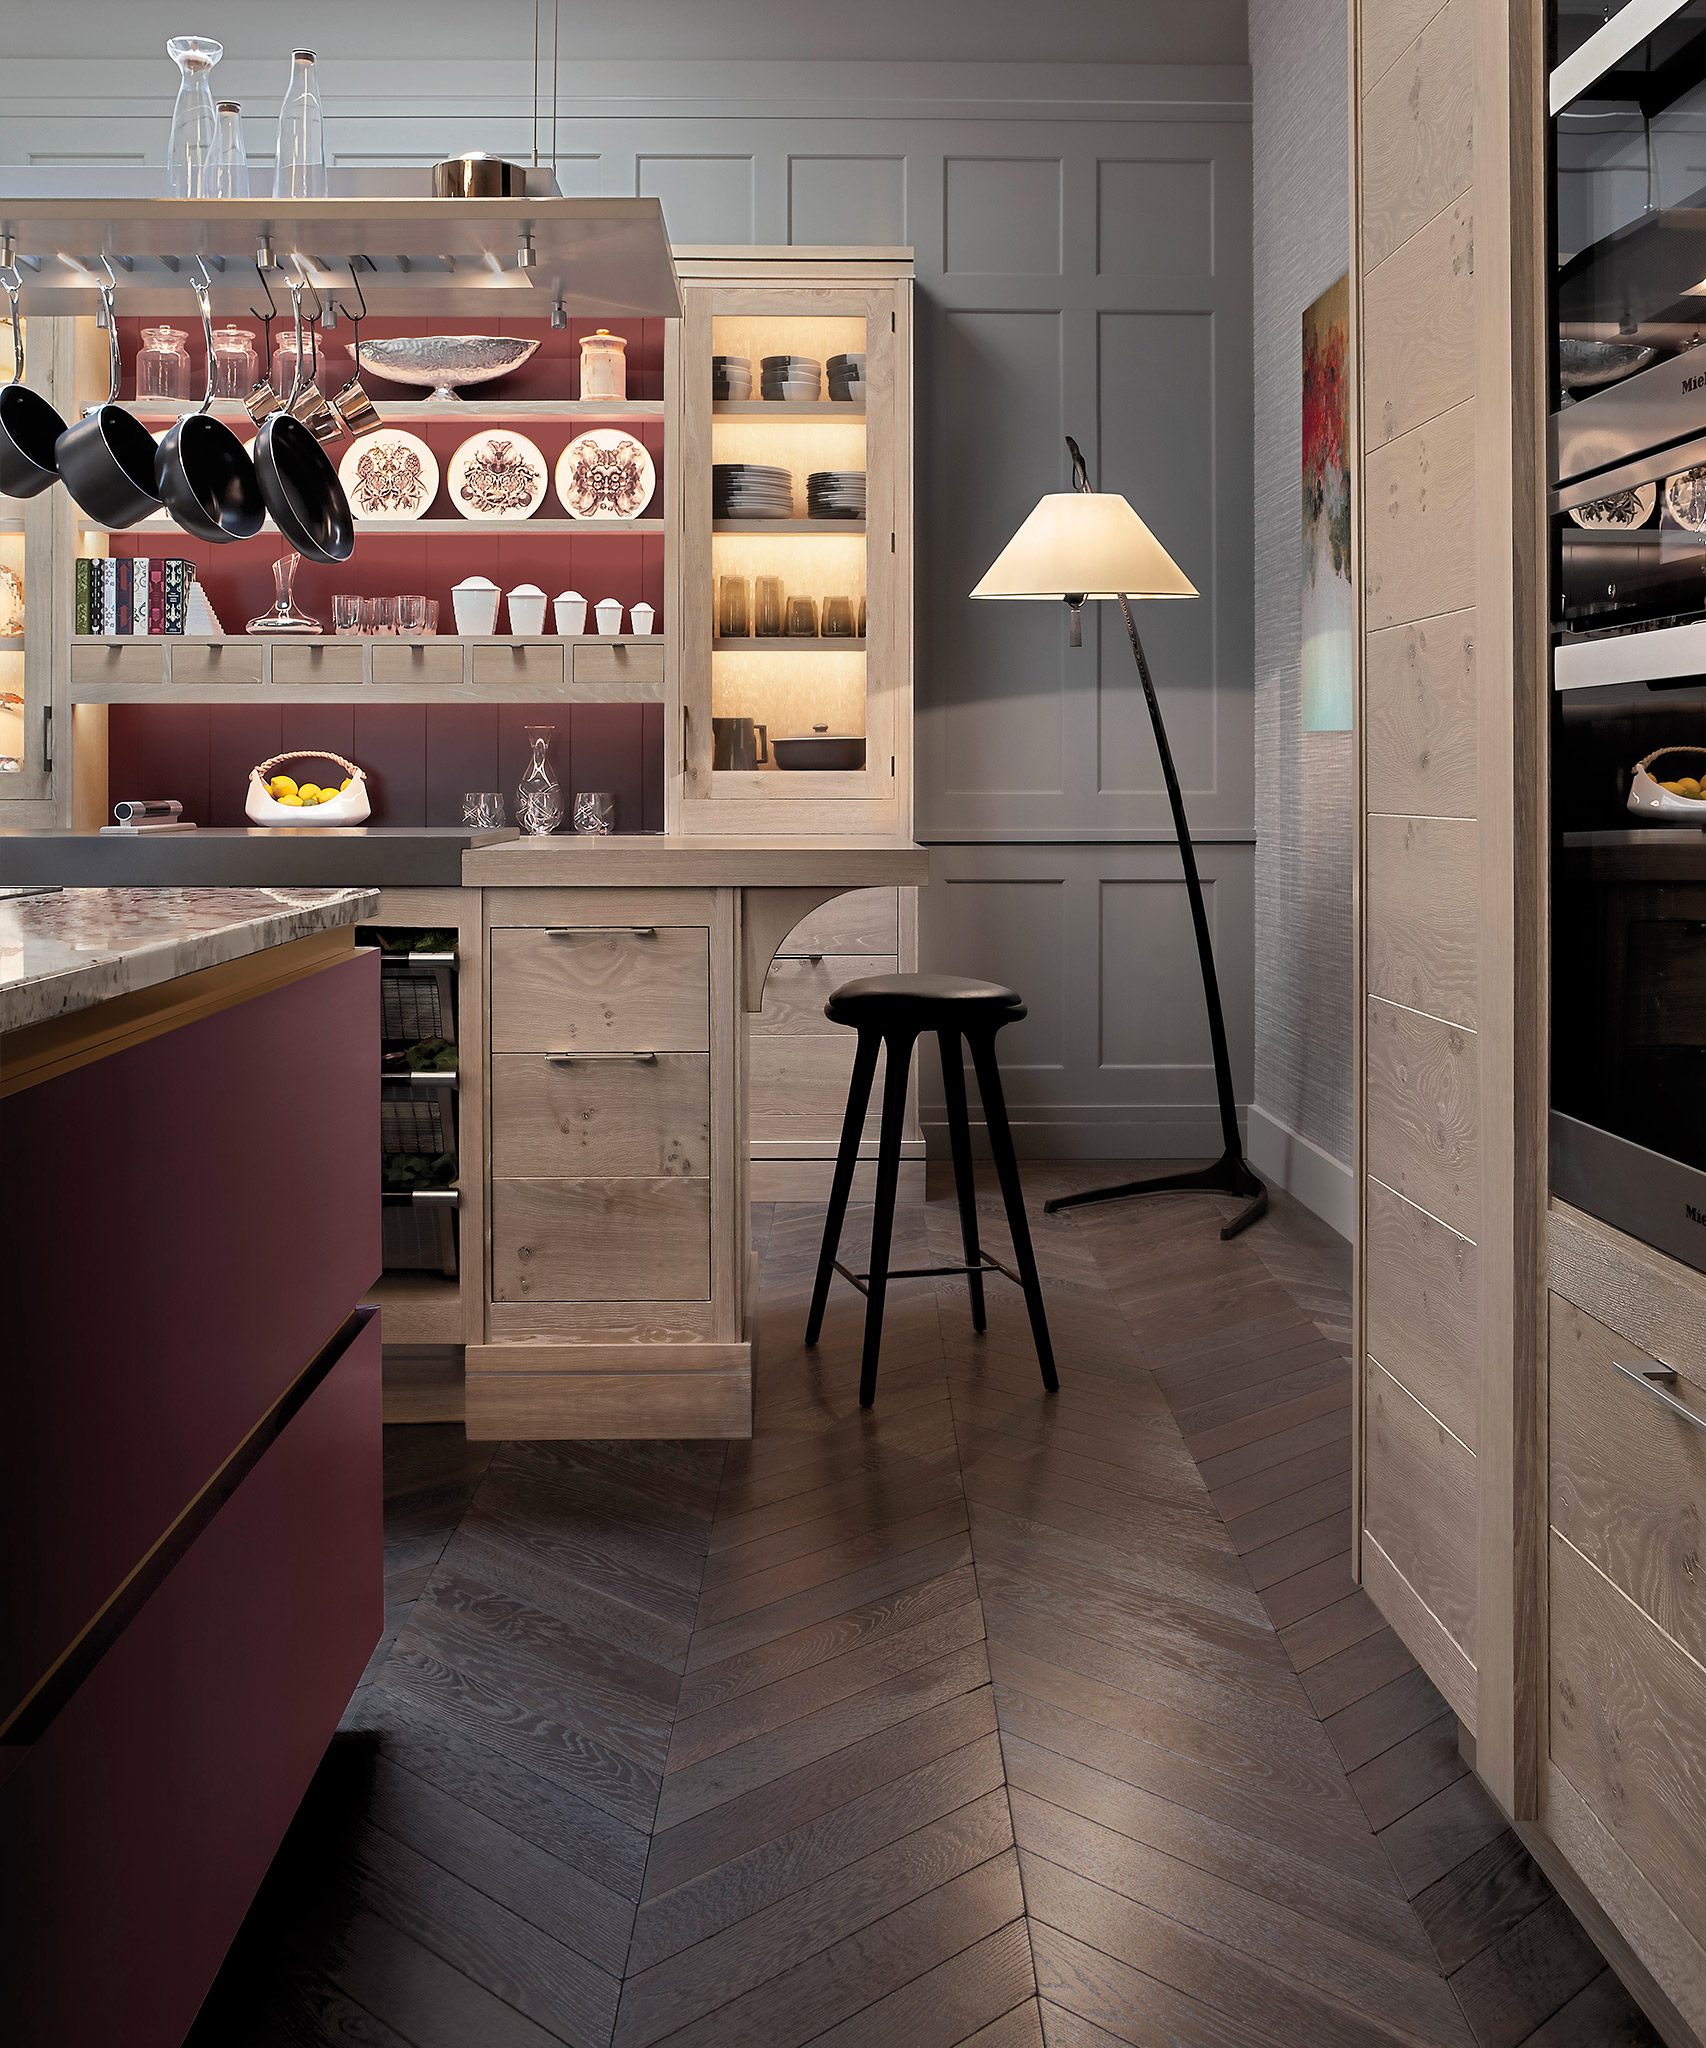 A Brasserie kitchen with plum coloured Modernist island